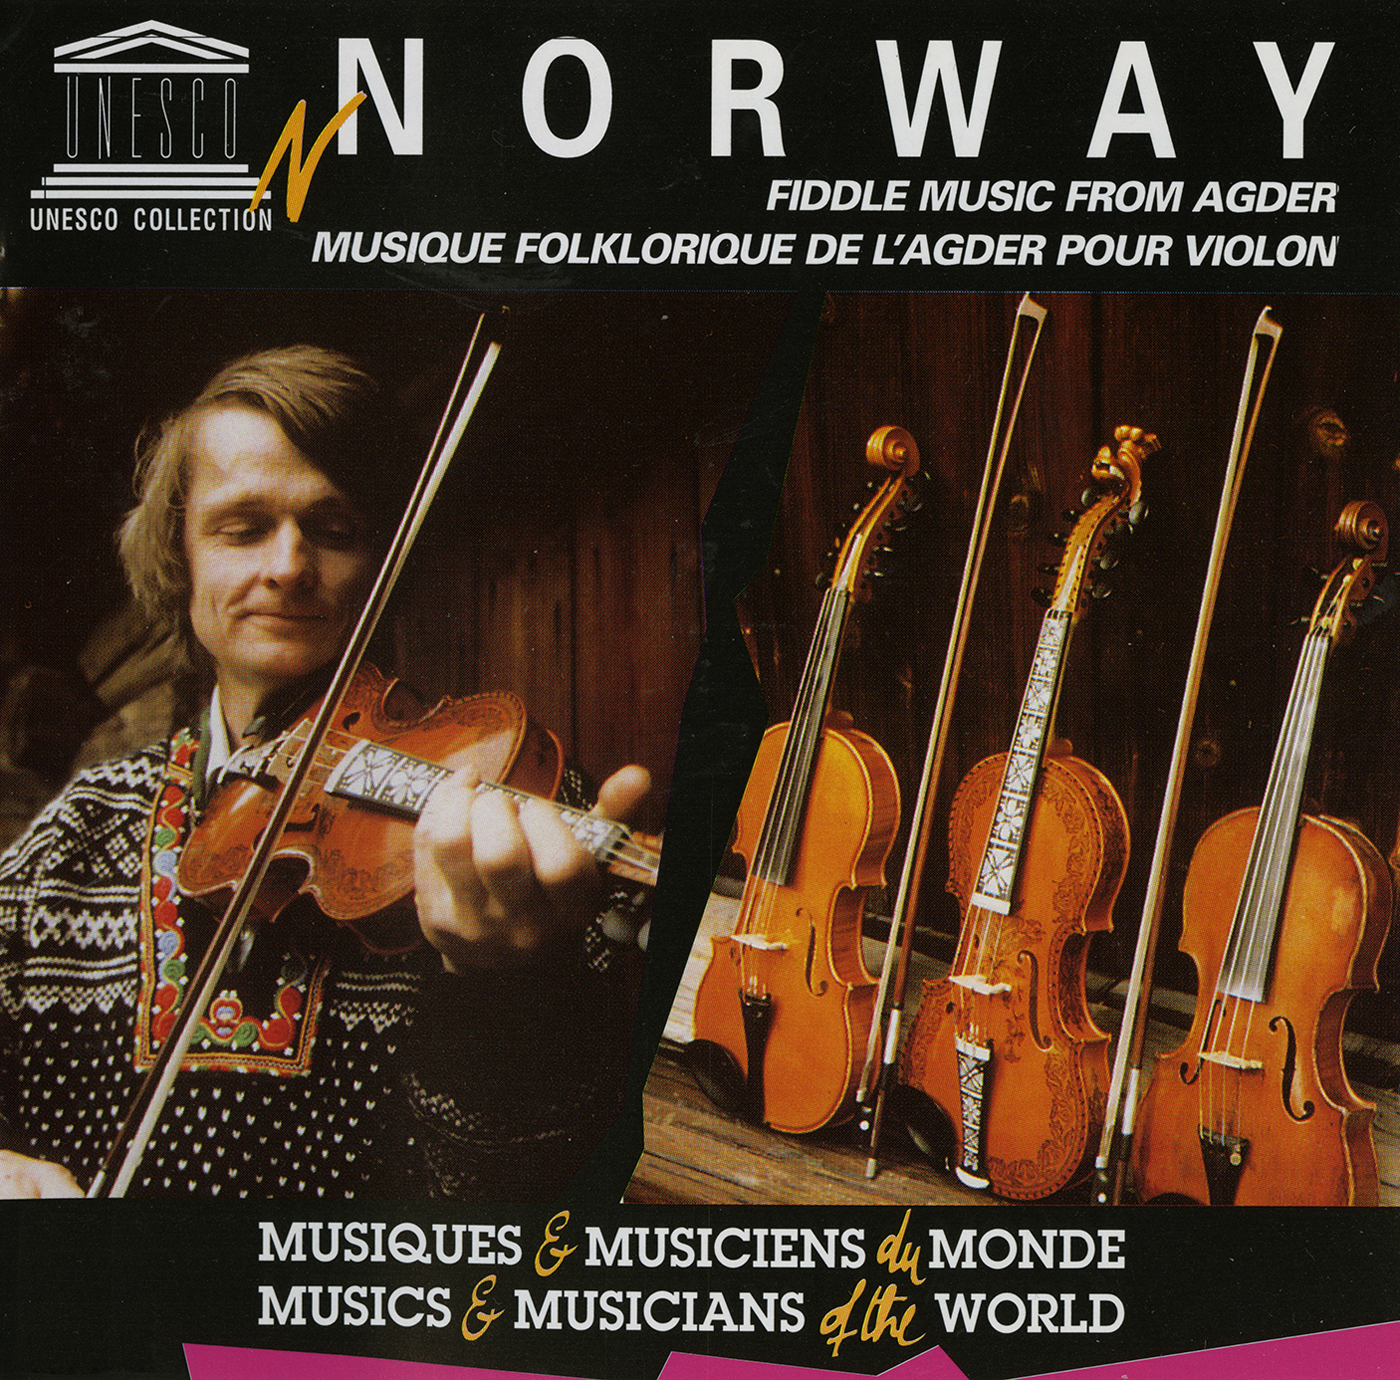 Norway: Fiddle and Hardanger Fiddle Music from Agder